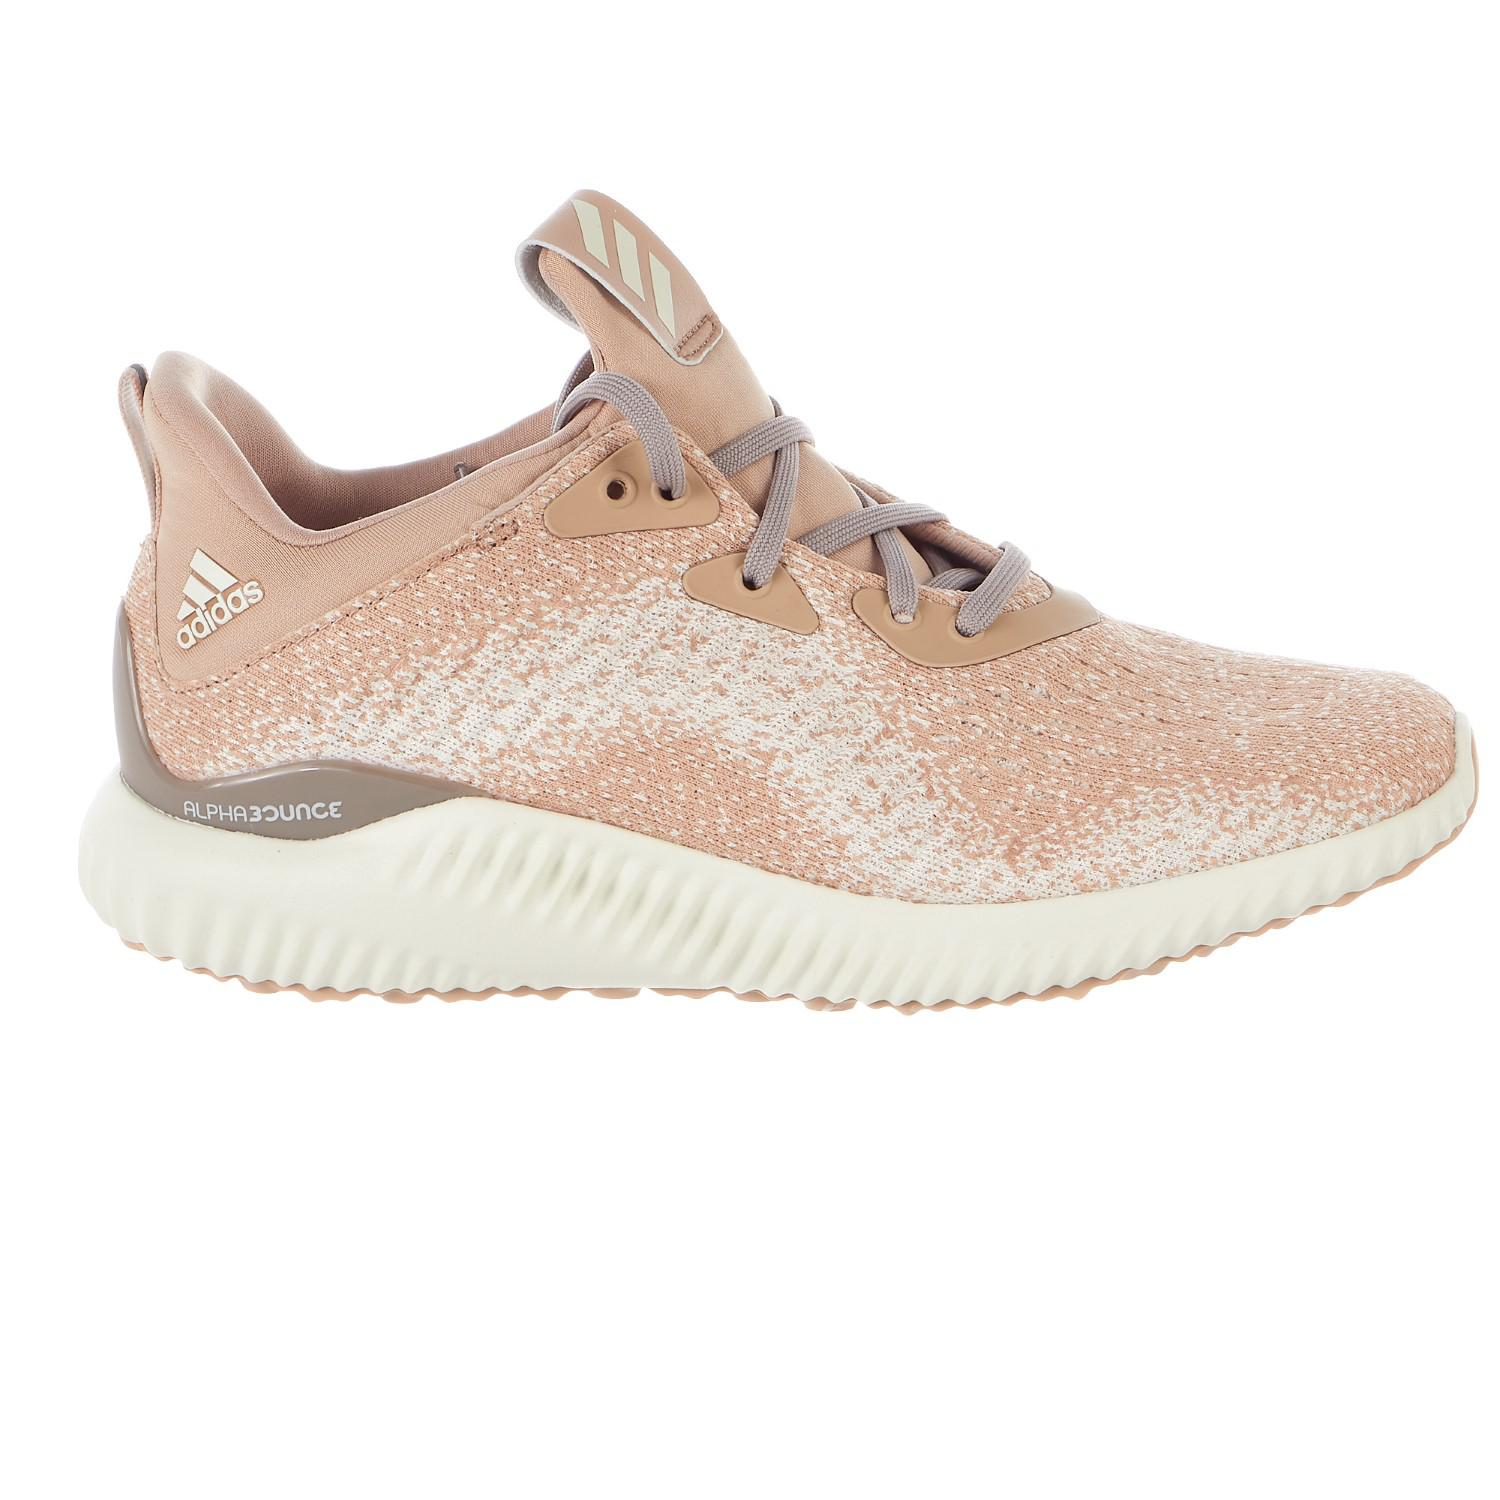 df98a2fce7e61 Lyst - adidas Alphabounce 1 Ash pearl chalk coral grey one Running ...